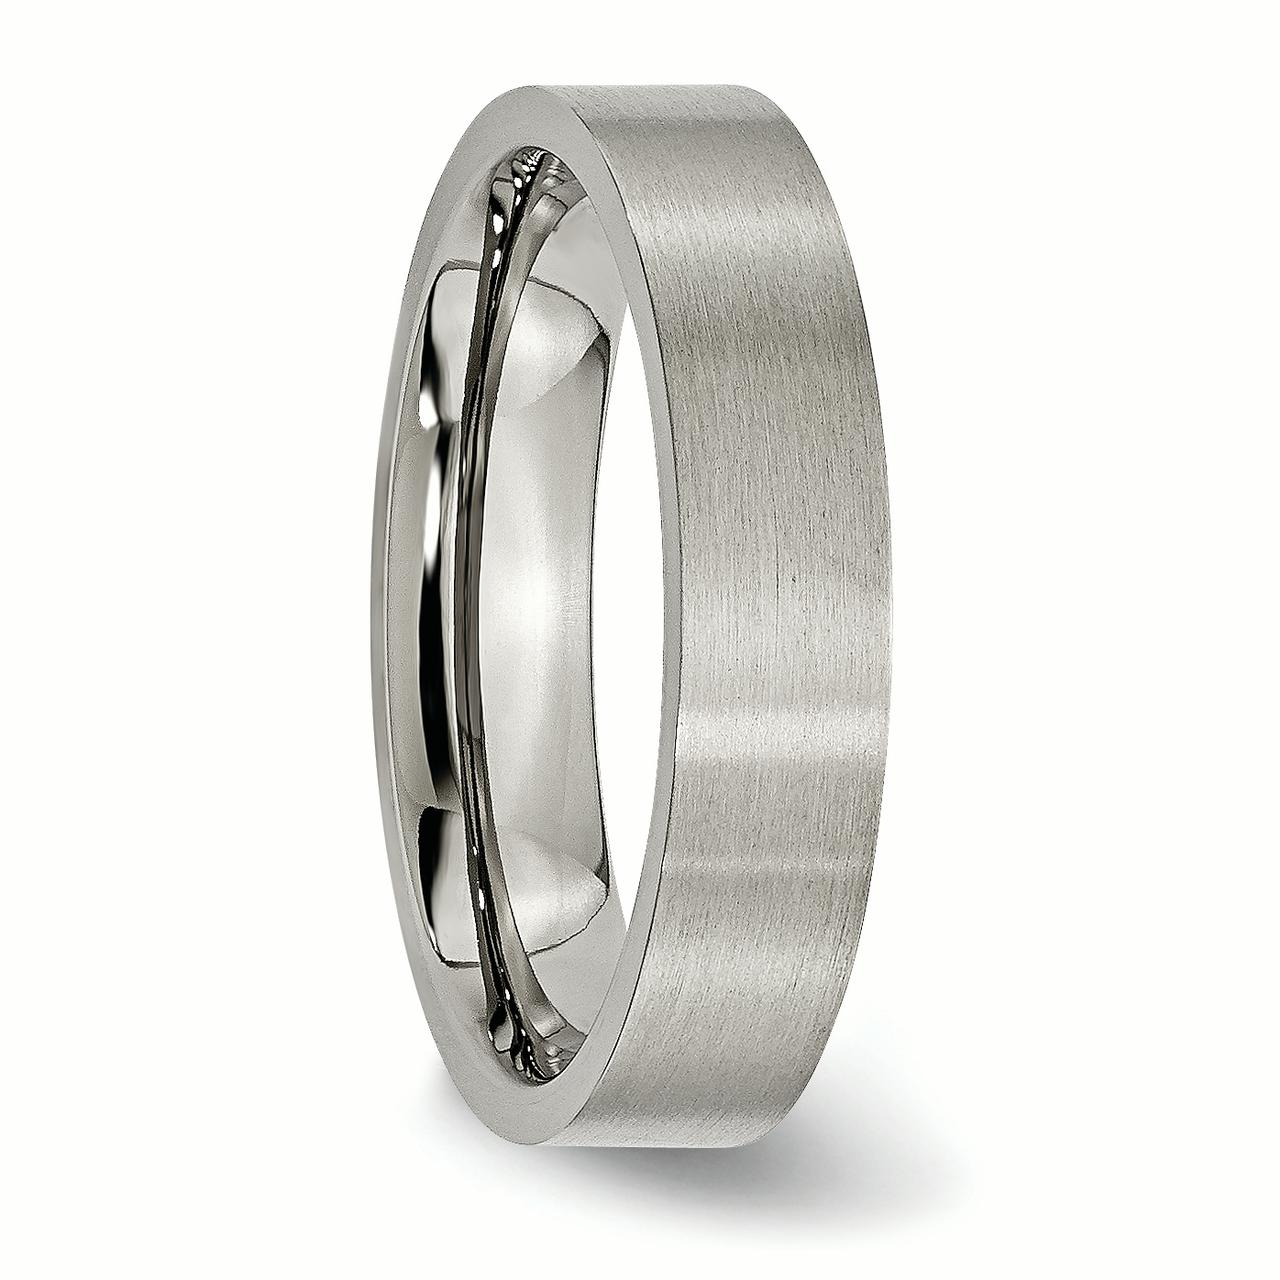 Titanium Flat 5mm Brushed Wedding Ring Band Size 10.00 Classic Fashion Jewelry Gifts For Women For Her - image 6 of 7